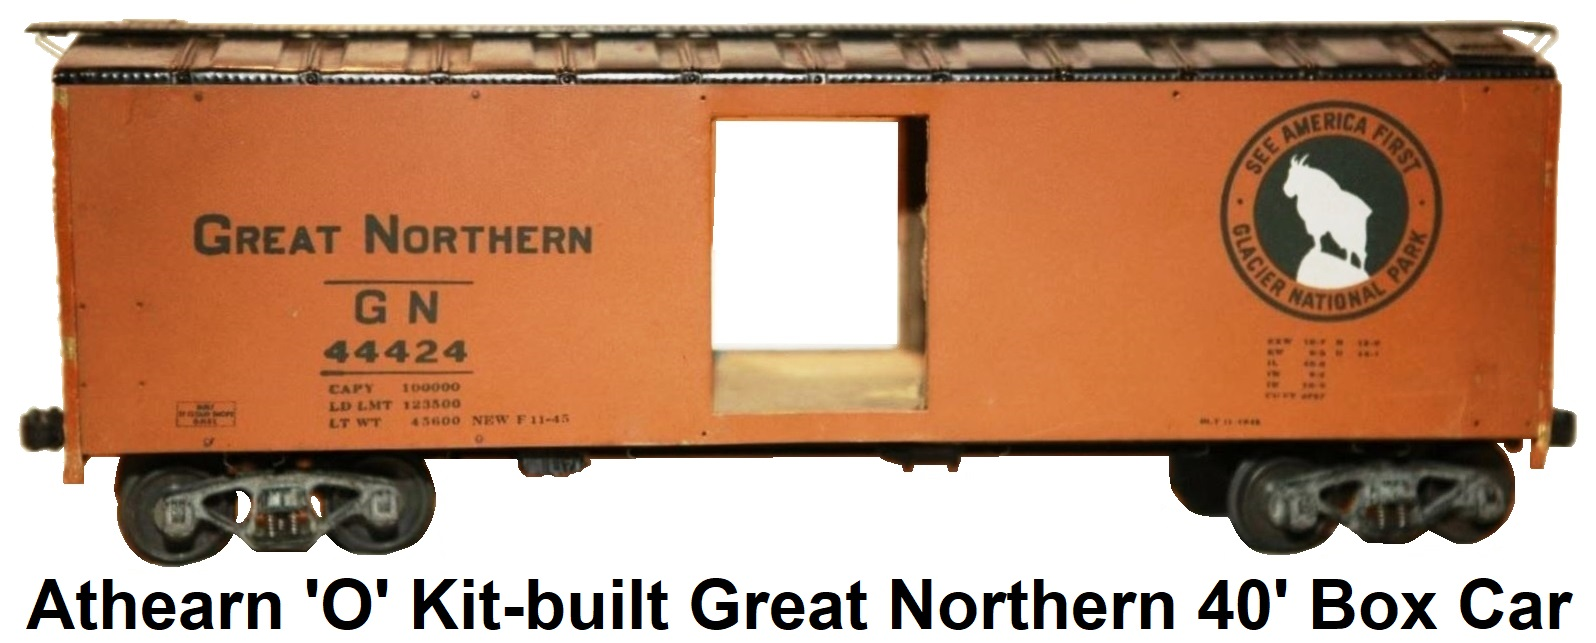 Athearn 'O' scale Kit-built 2-rail Great Northern #44424 Metal Shell 40' Box Car